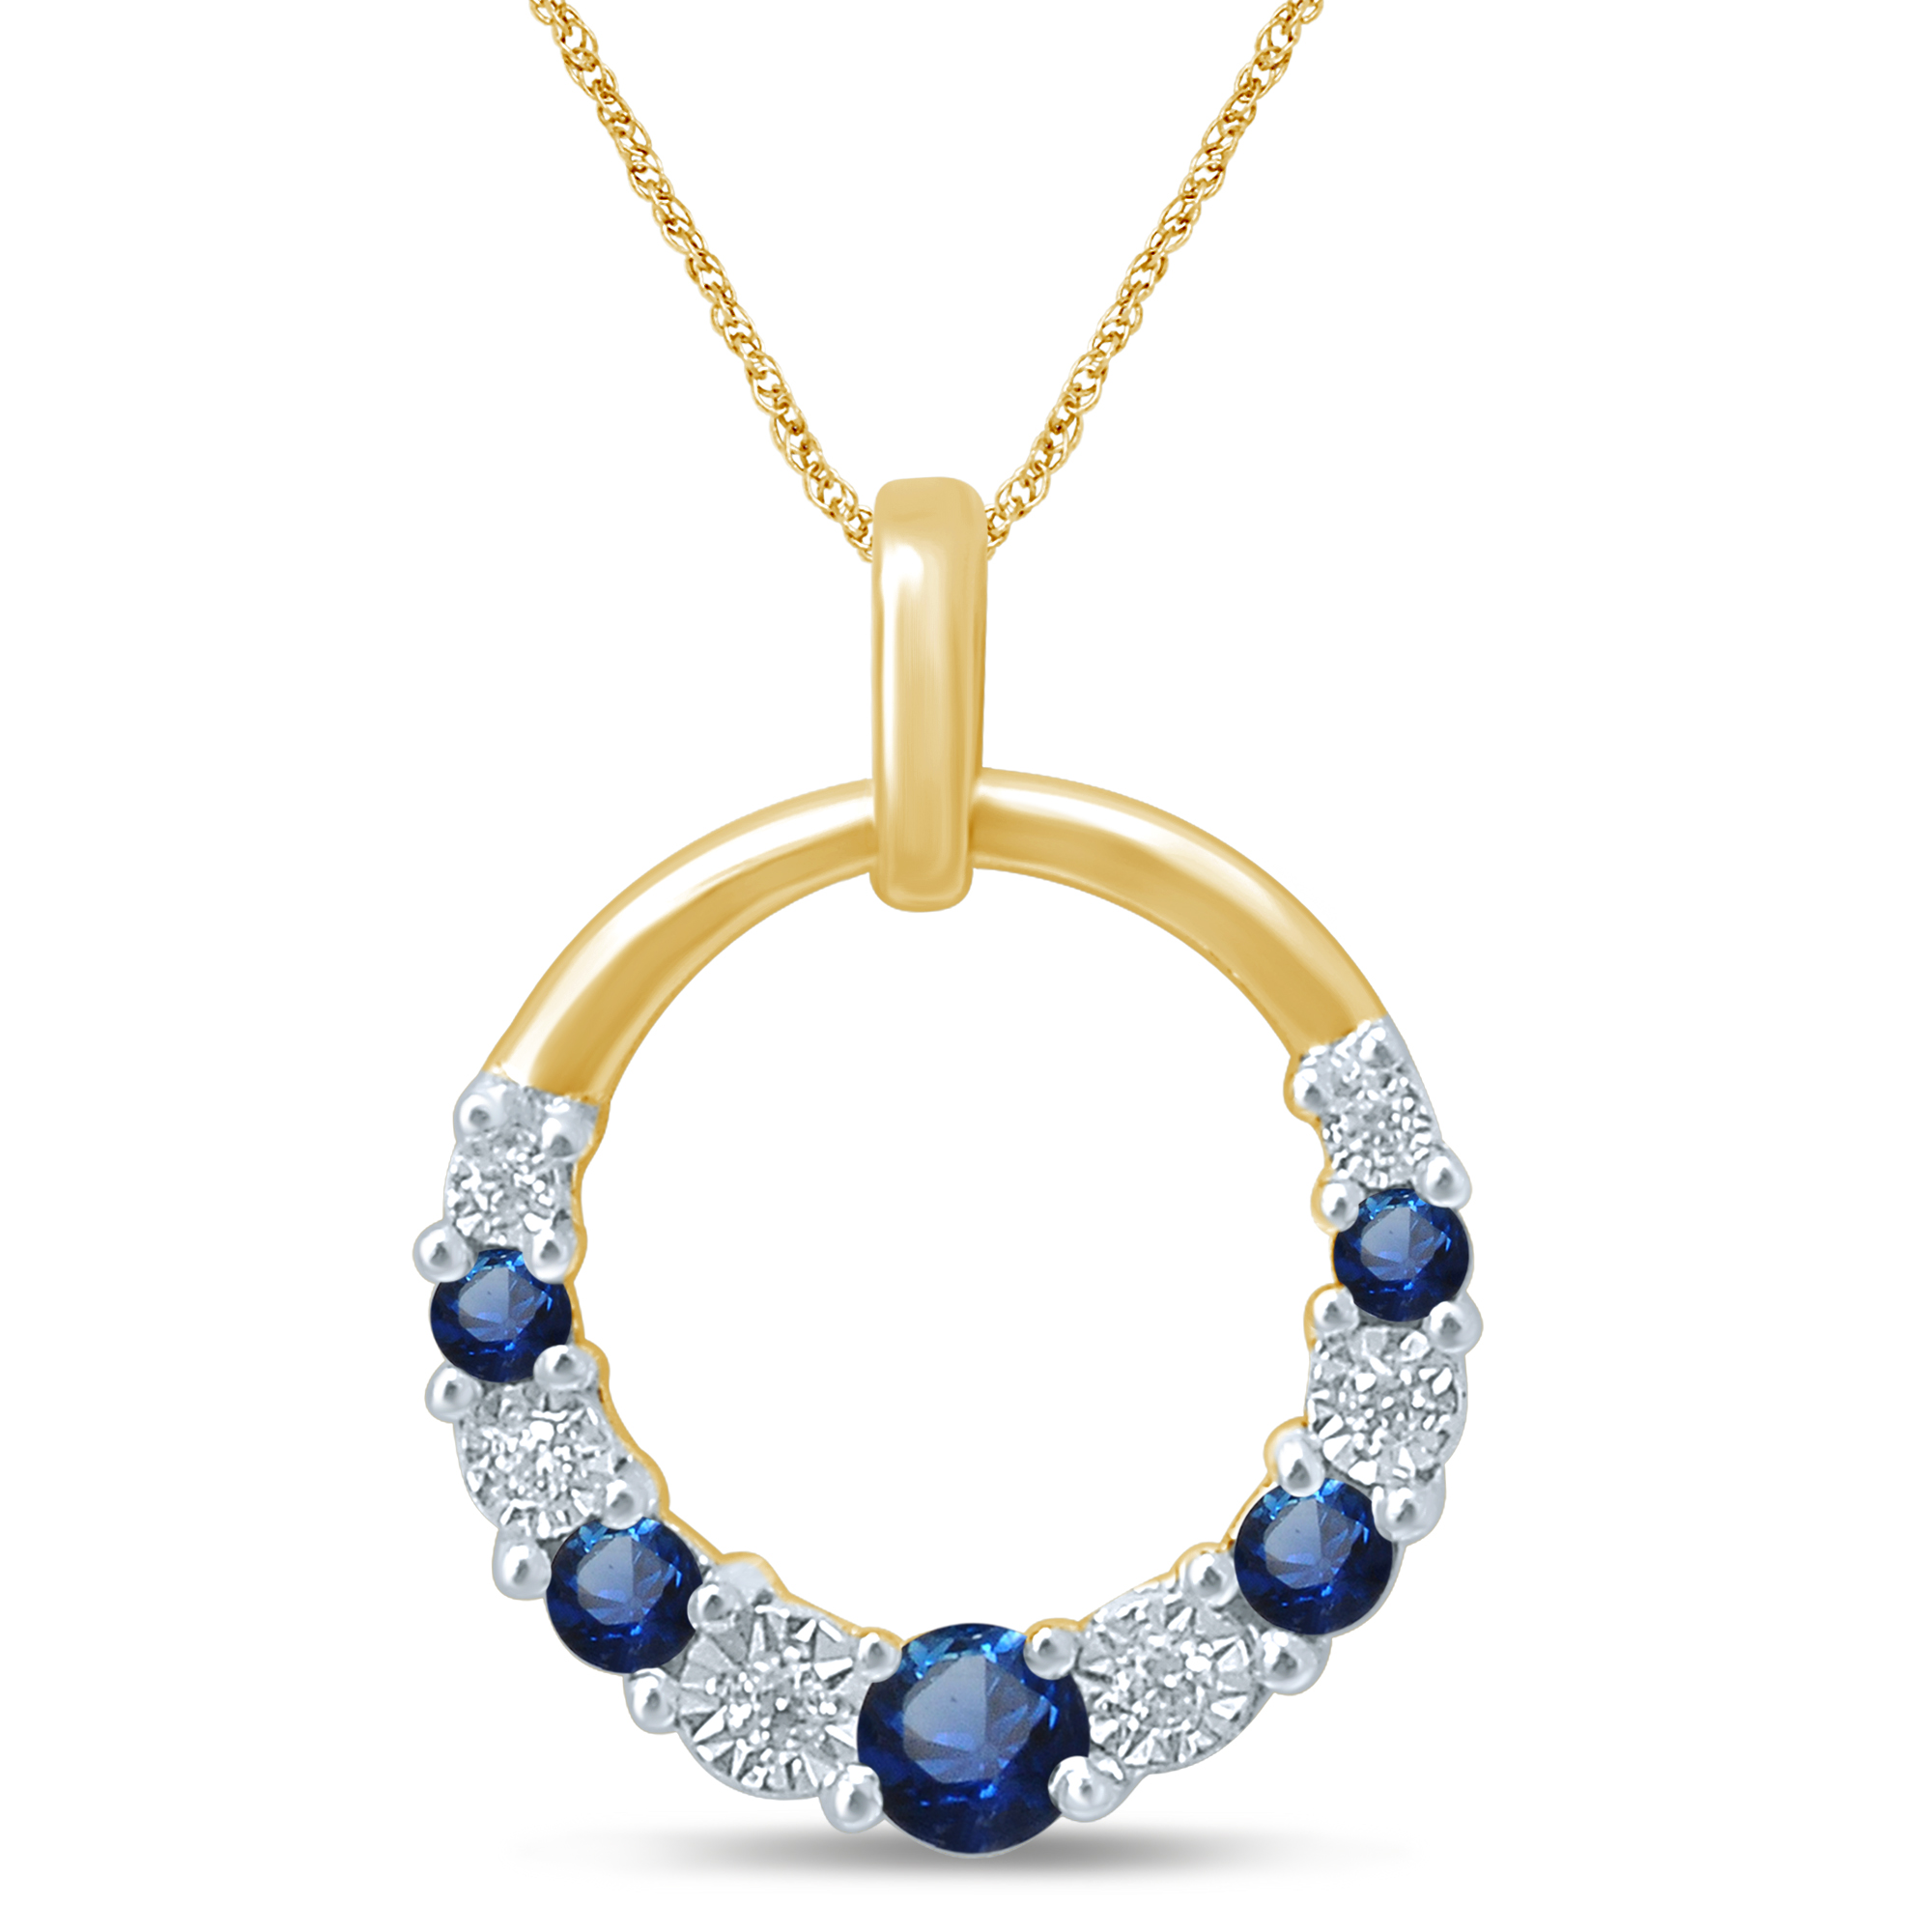 9ct Yellow Gold Natural Sapphire & Diamond Pendant with 45cm Chain Included